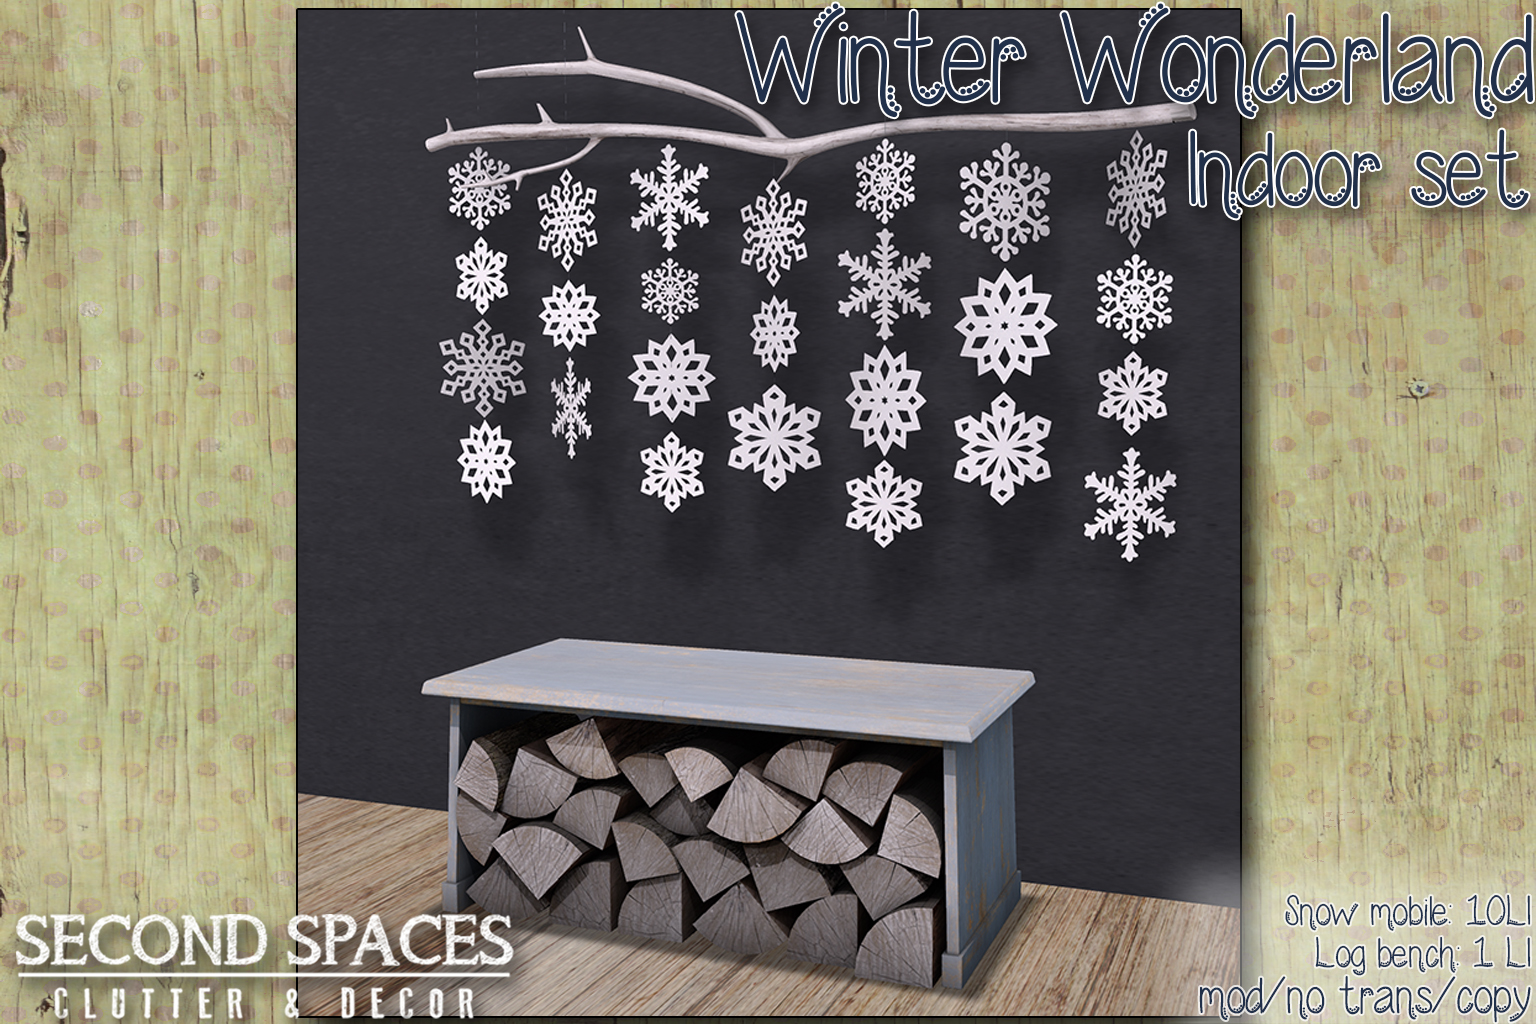 winter wonderland_indoor set_vendor.jpg